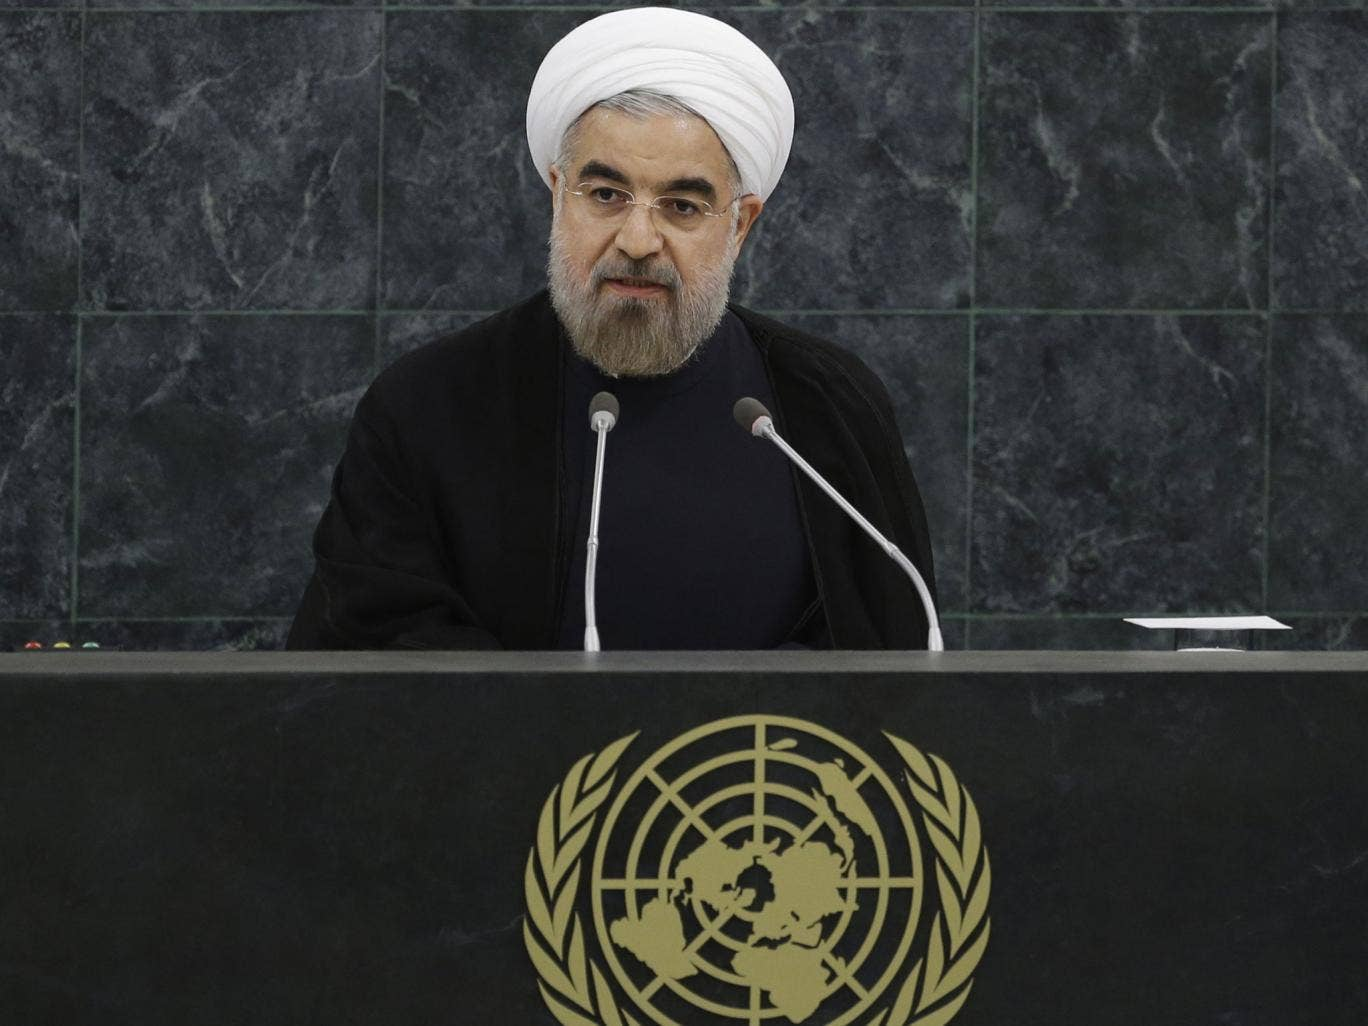 Iranian President, Hassan Rouhani, addresses the UN General Assembly in New York